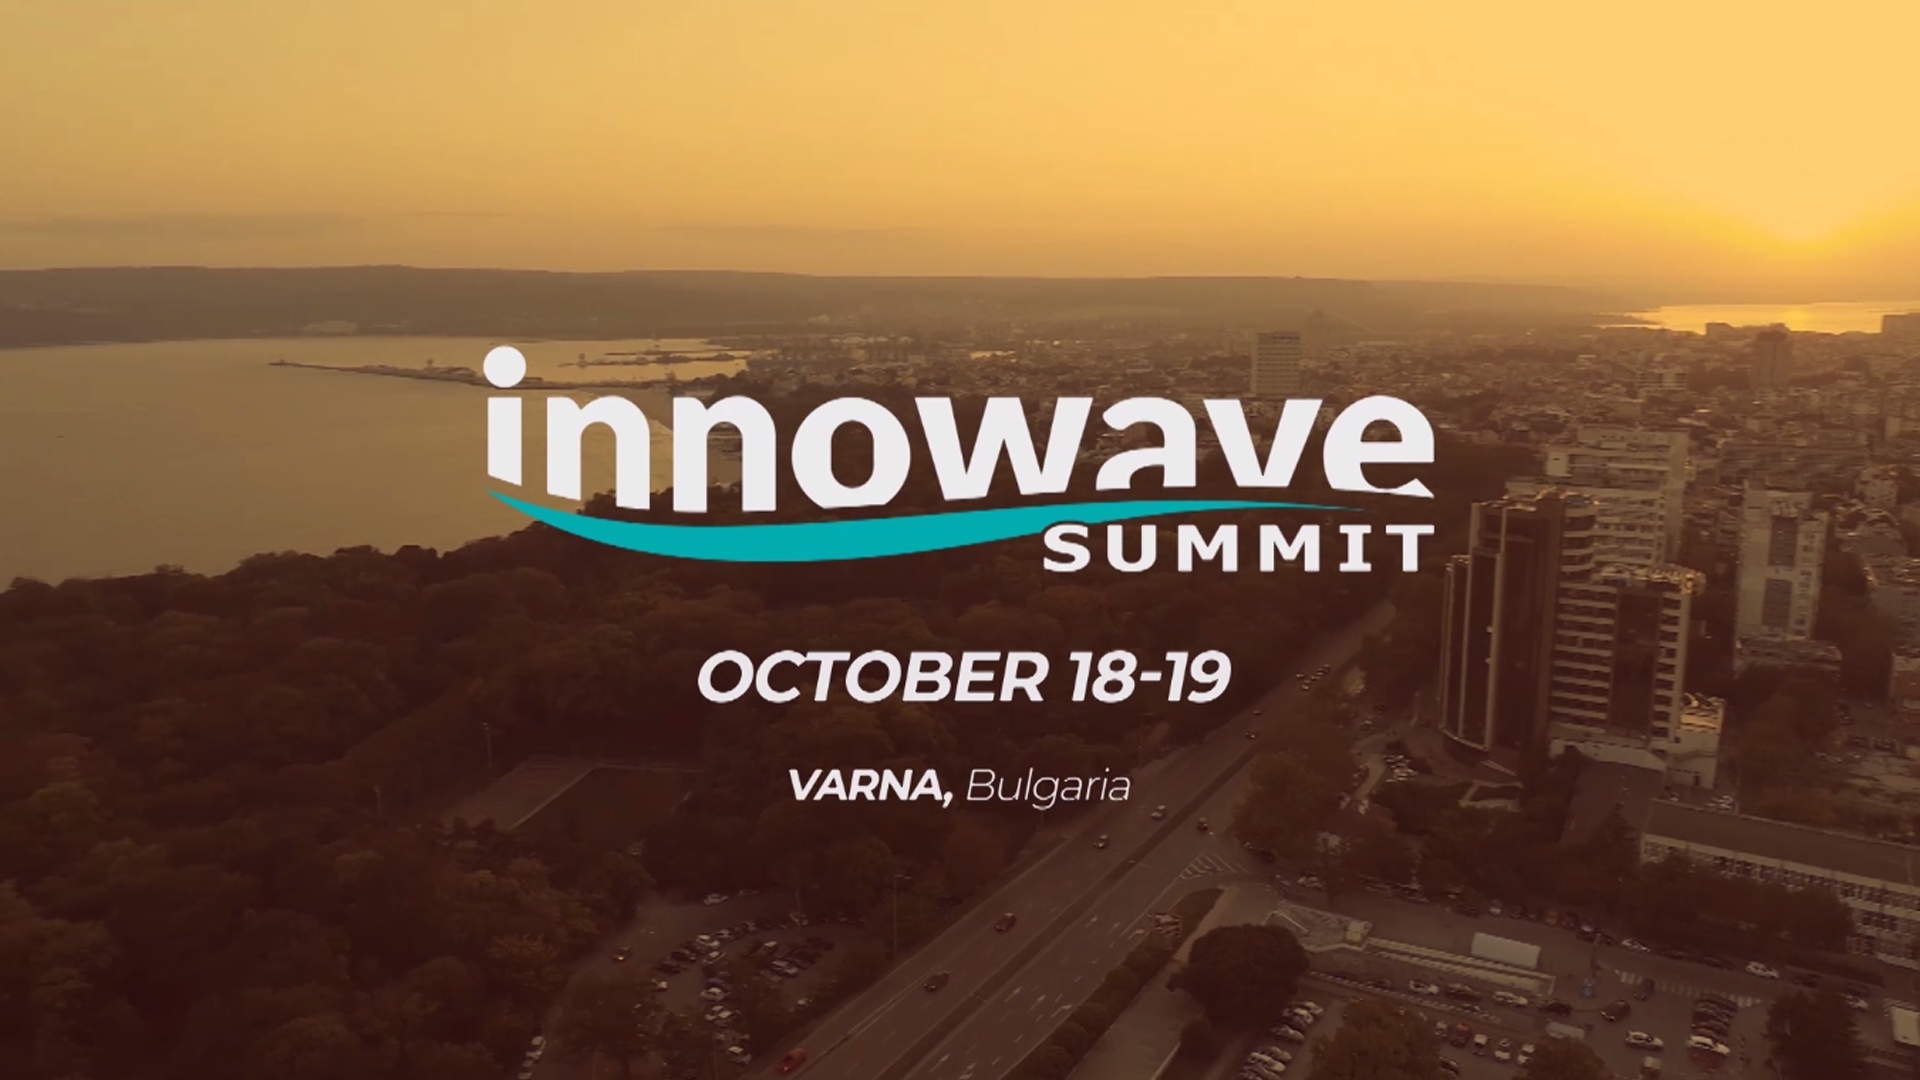 Why attend Innowave Summit 2019?